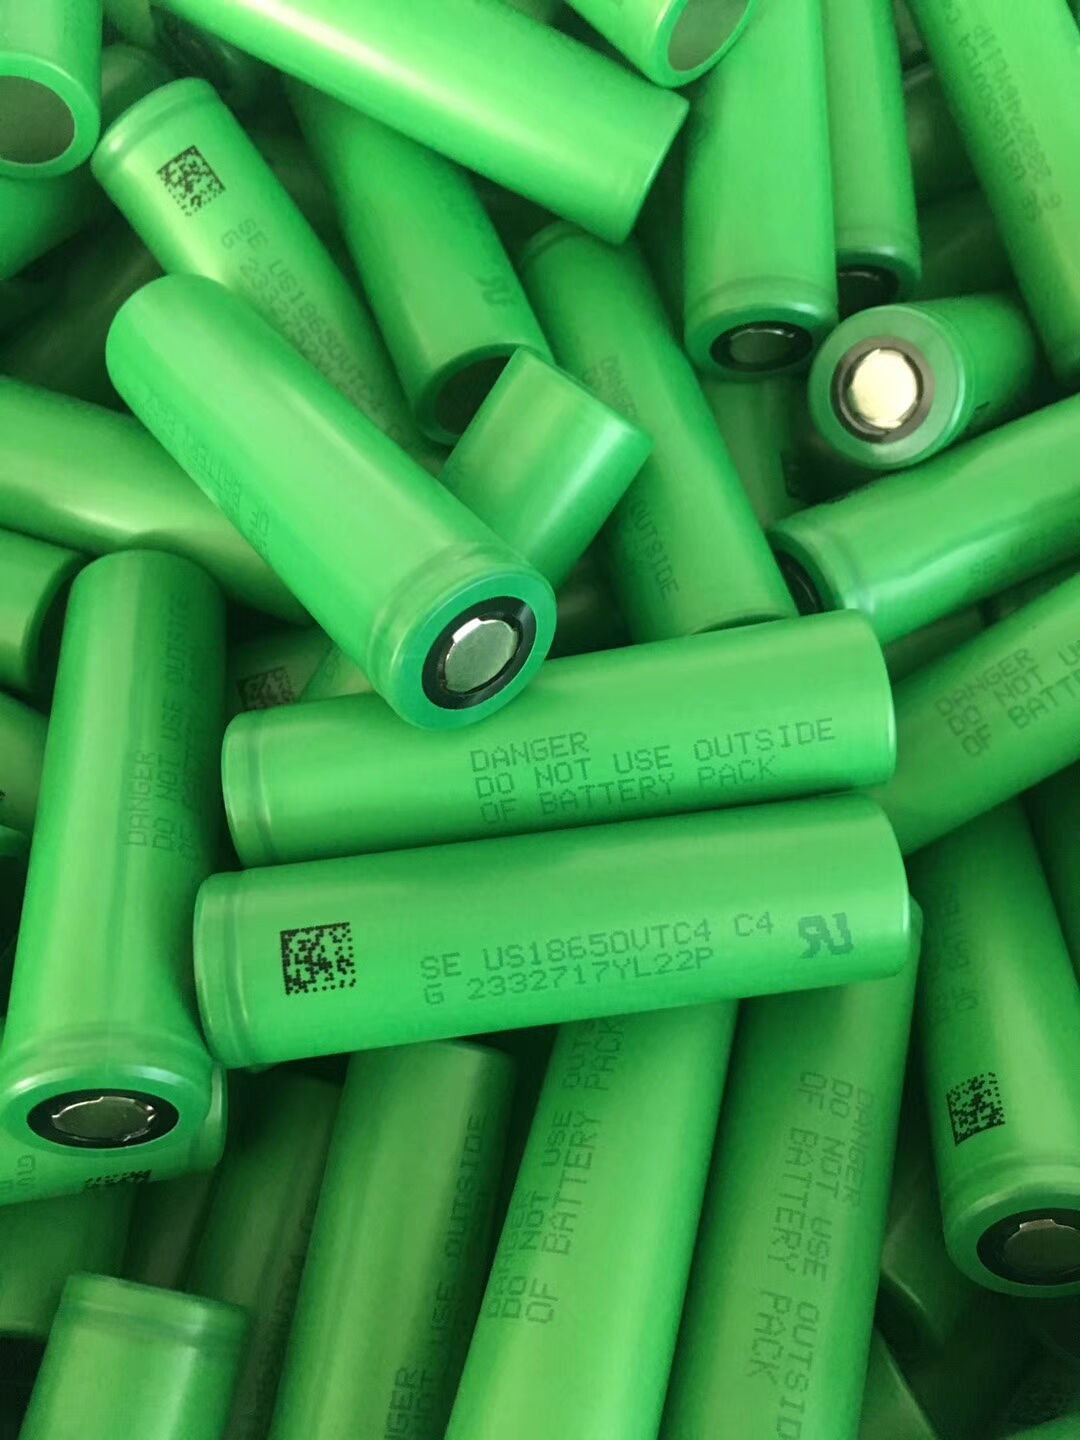 High quality 18650 battery cells